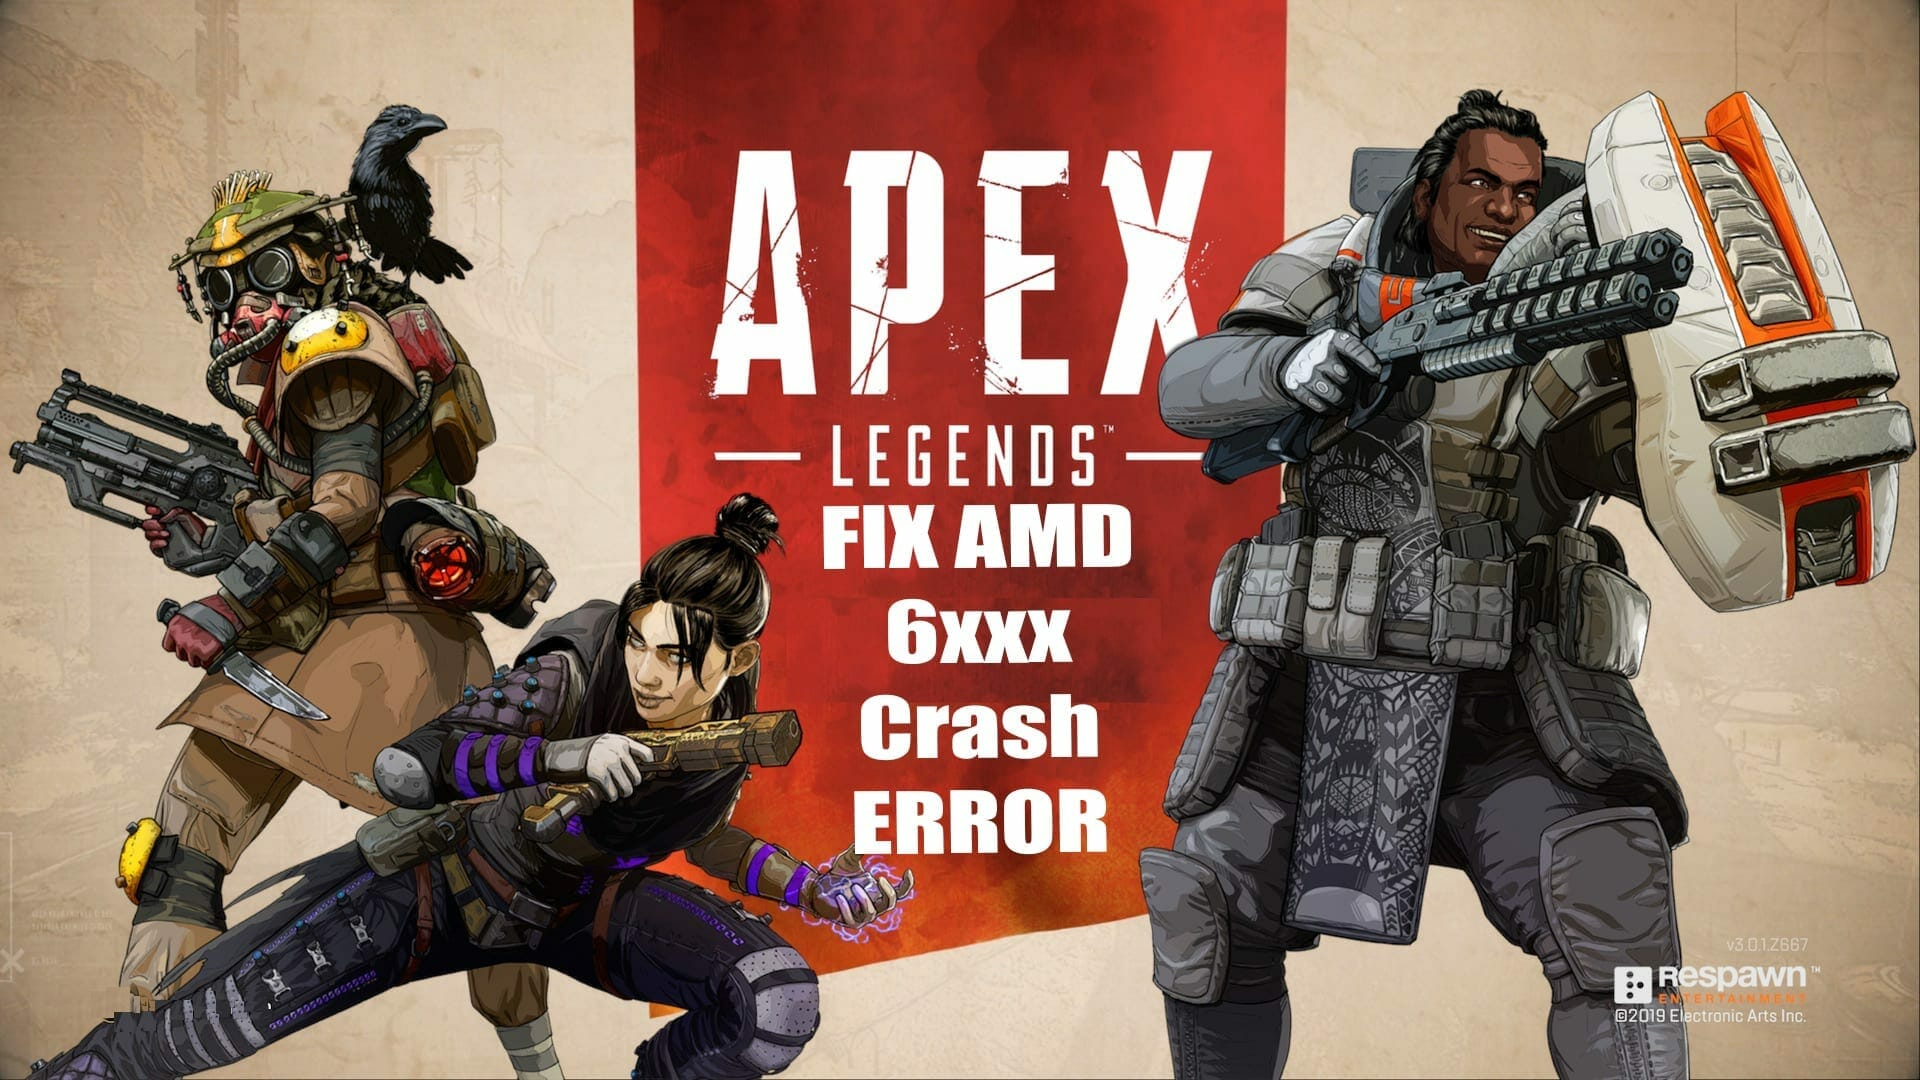 Can Apex Legends really beat Fortnite? Twitch stats suggest it can